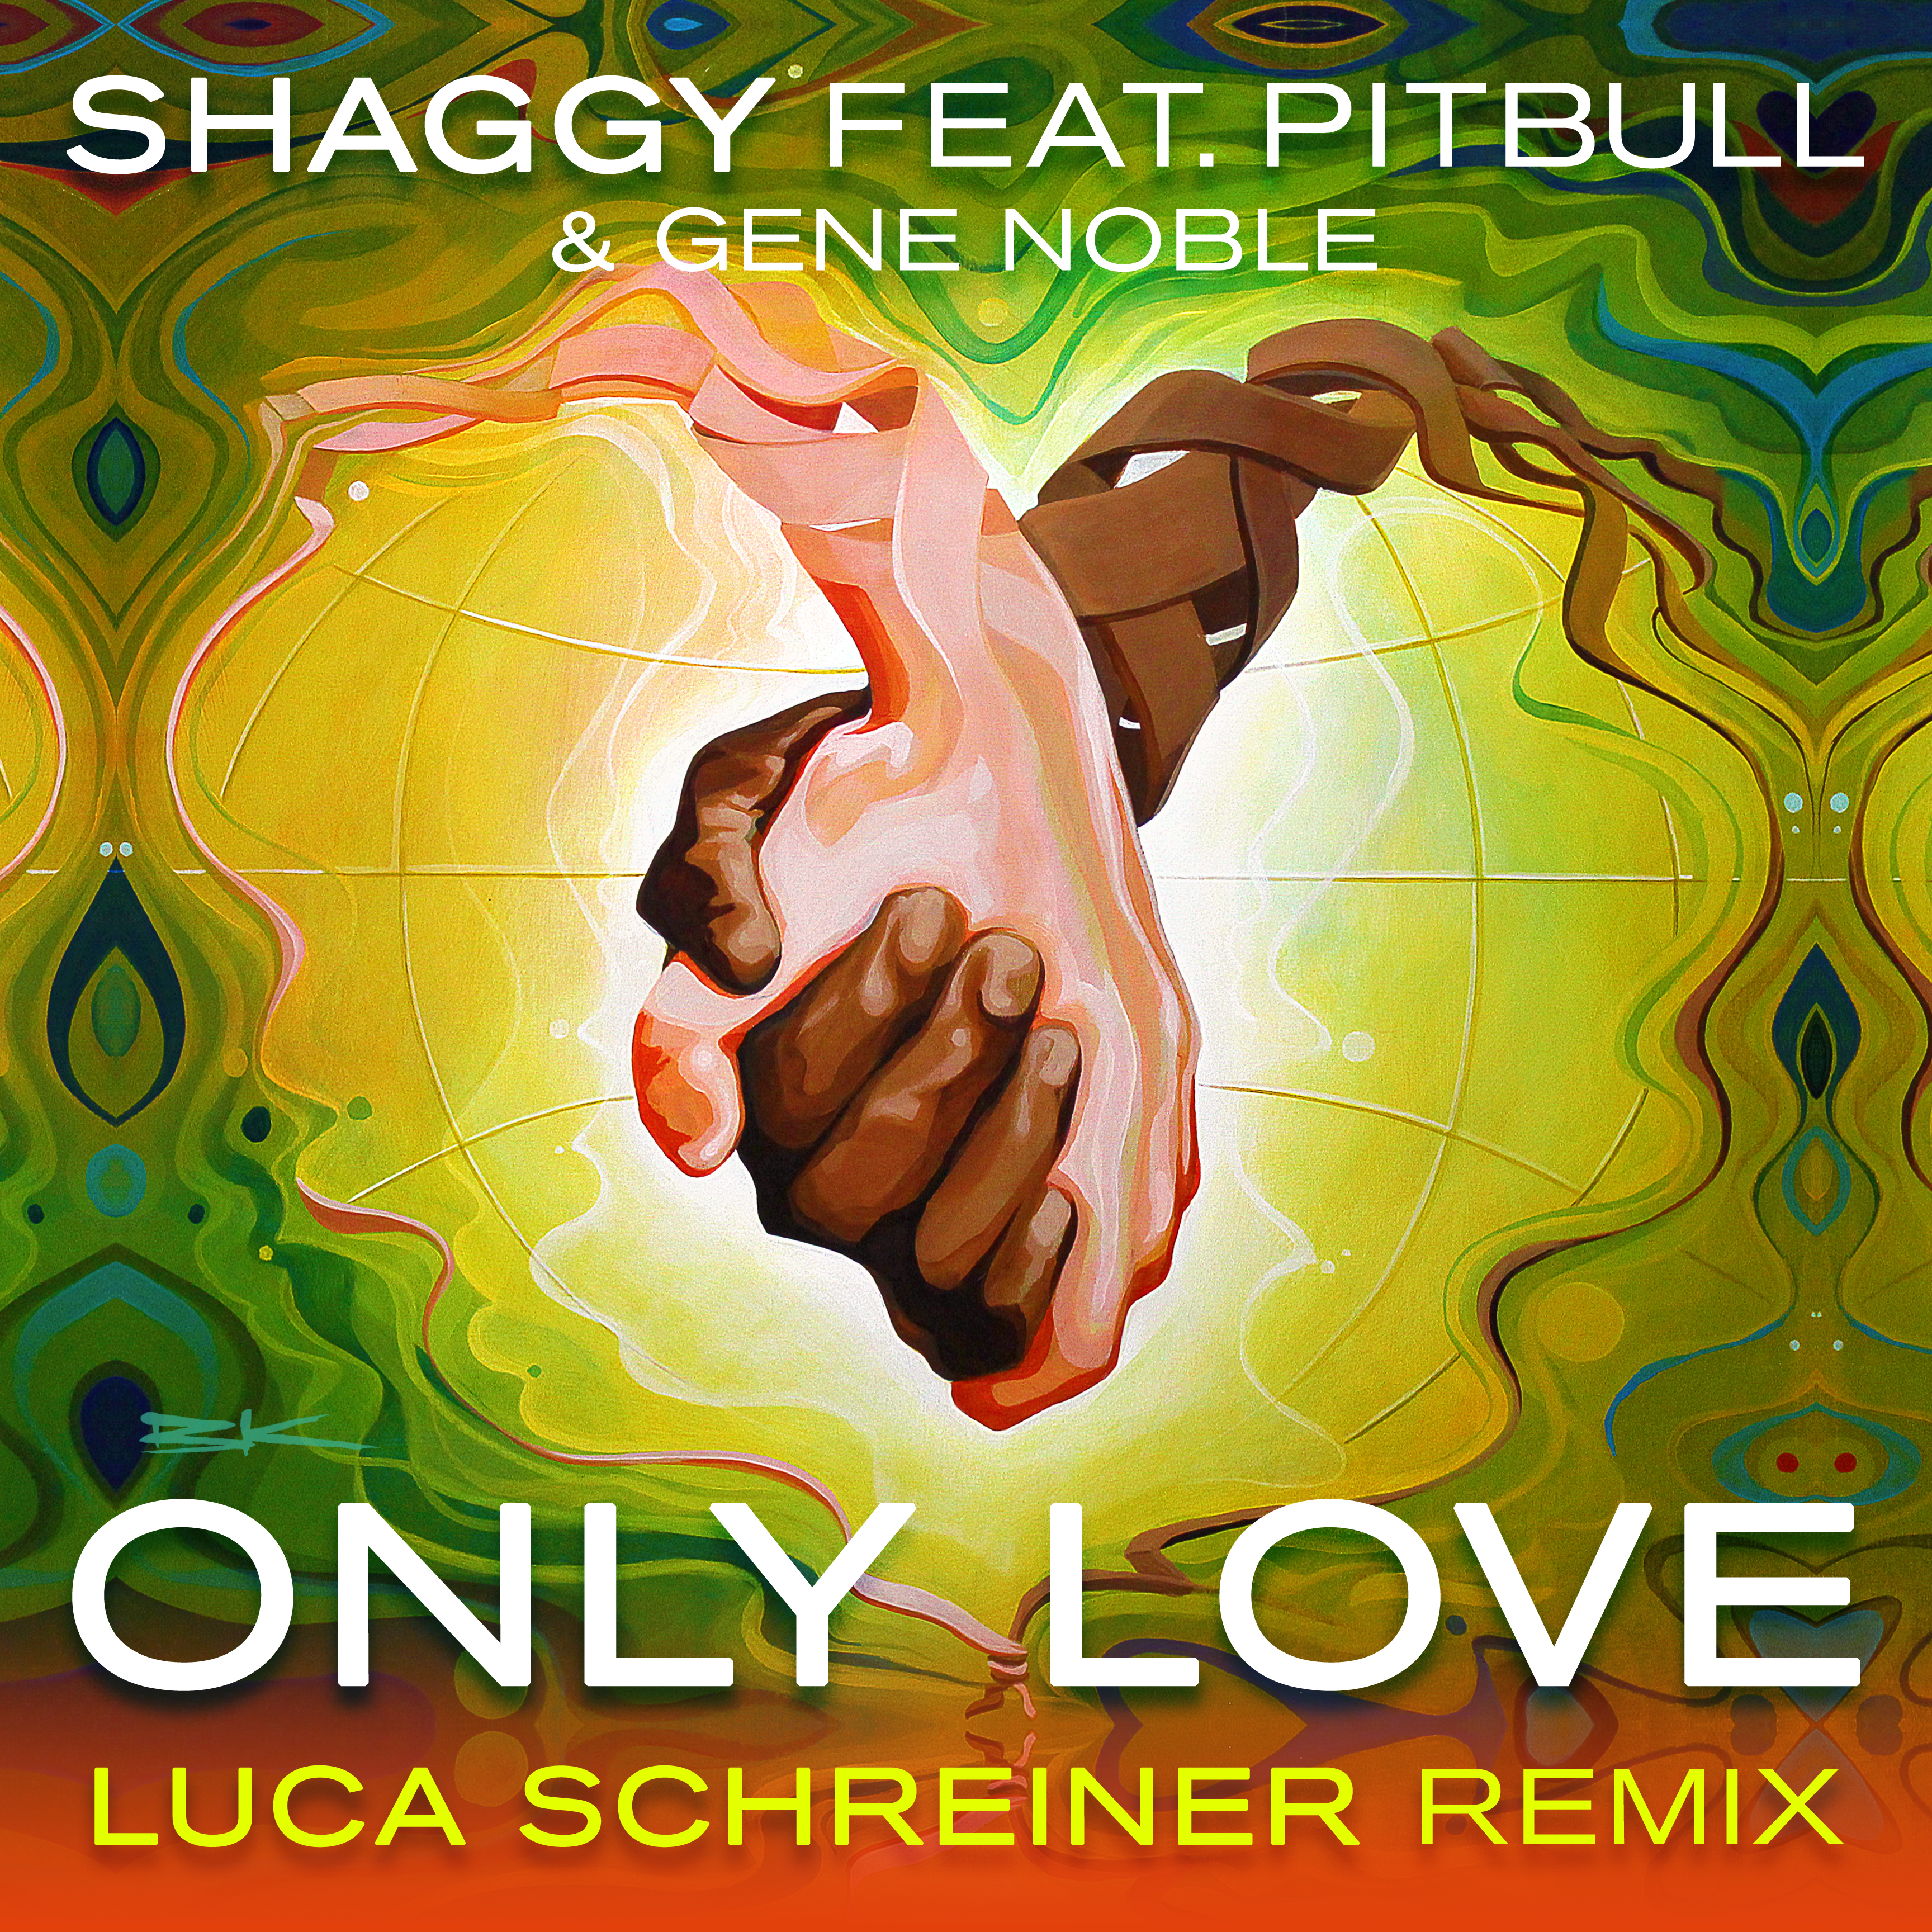 Luca Schreiner Releases The Official Remix to Shaggy & Pitbull's